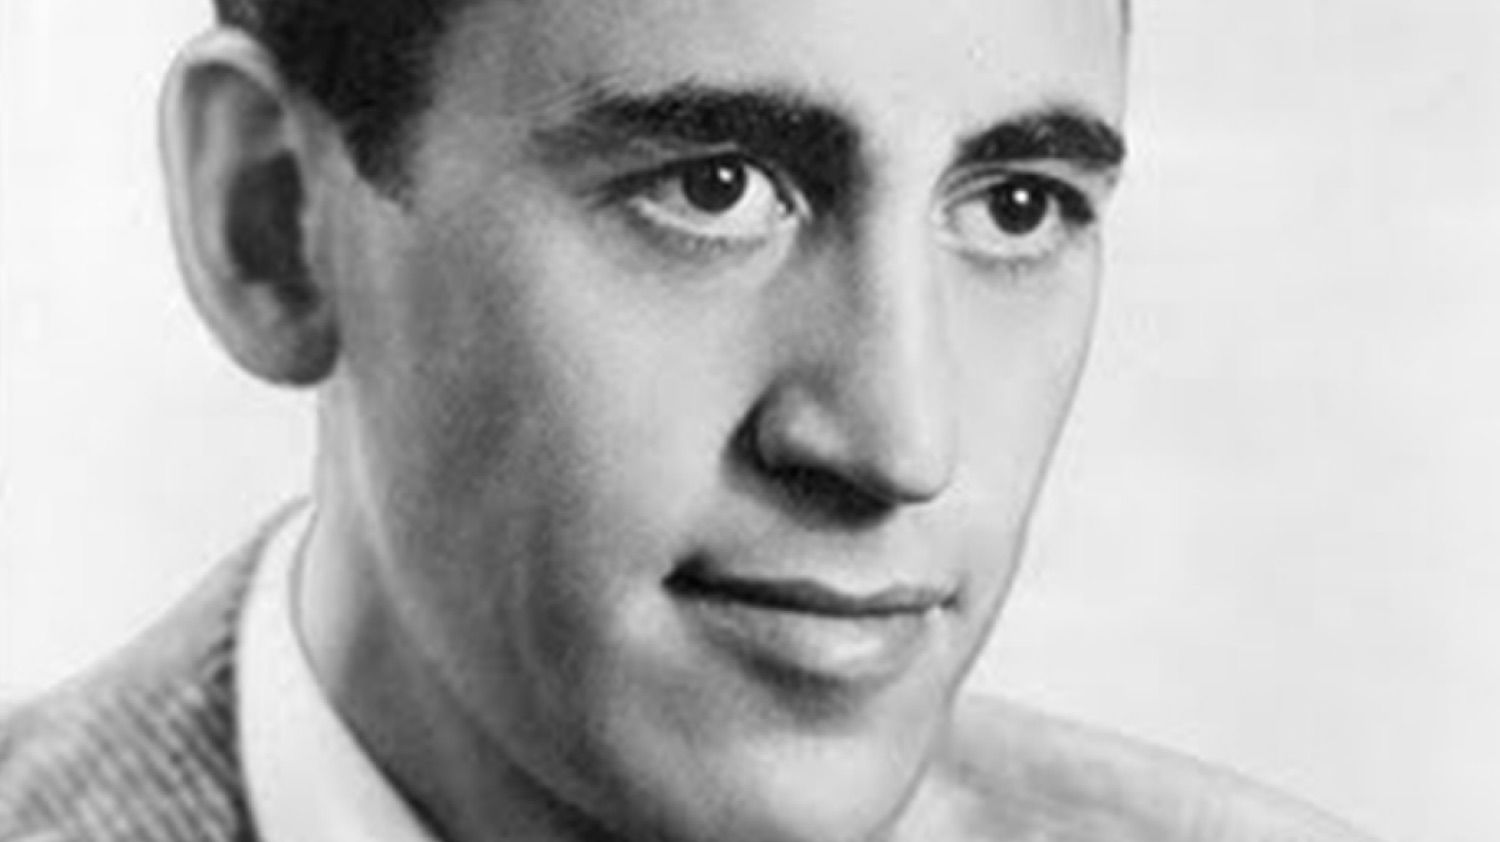 10 Fascinating Facts About J.D. Salinger